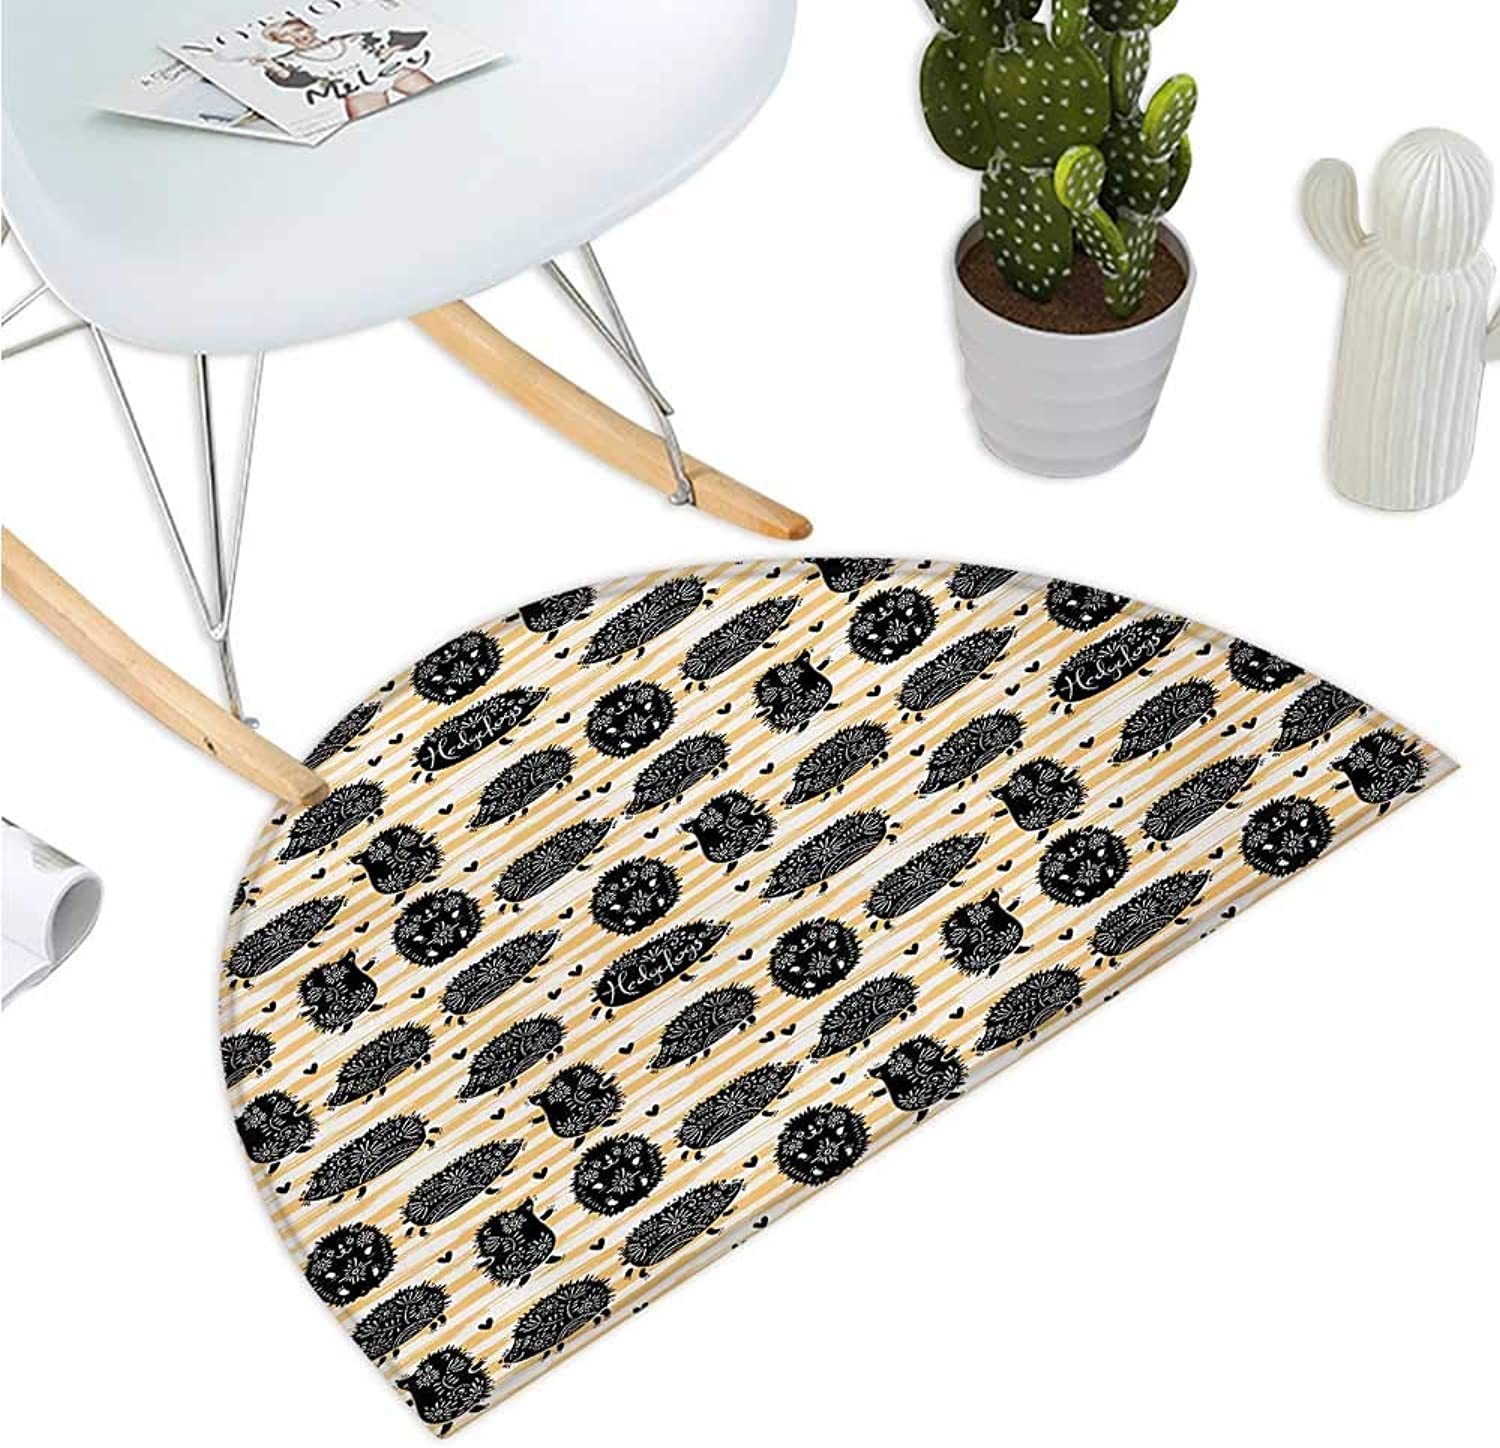 Hedgehog Semicircular Cushion Brushstroke Style Striped Backdrop Funny Animals with Floral Patterns Bathroom Mat H 51.1  xD 76.7  Pale orange Black White